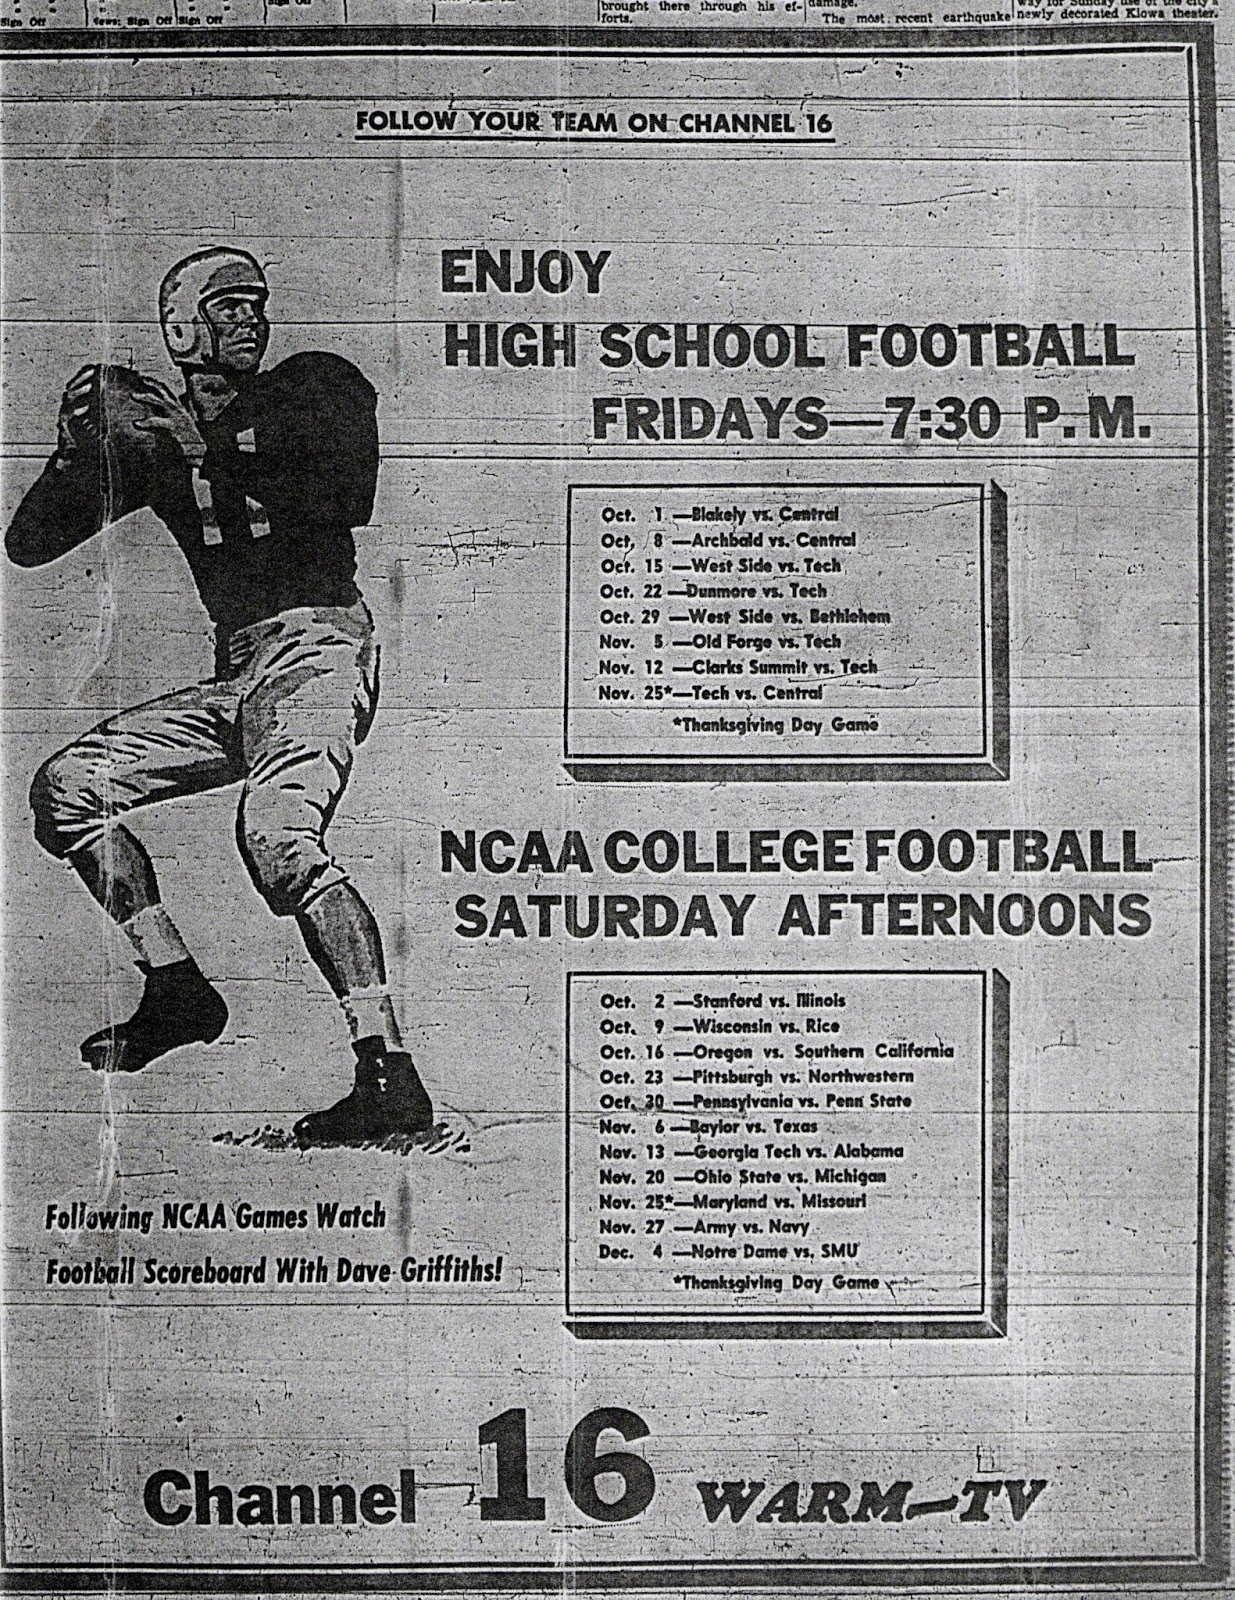 Plus WARM Tapped Into The ABC TV Networks Growing Later To Become Storied NCAA College Football Saturdays Here Are Two Ads From Fall Of 54